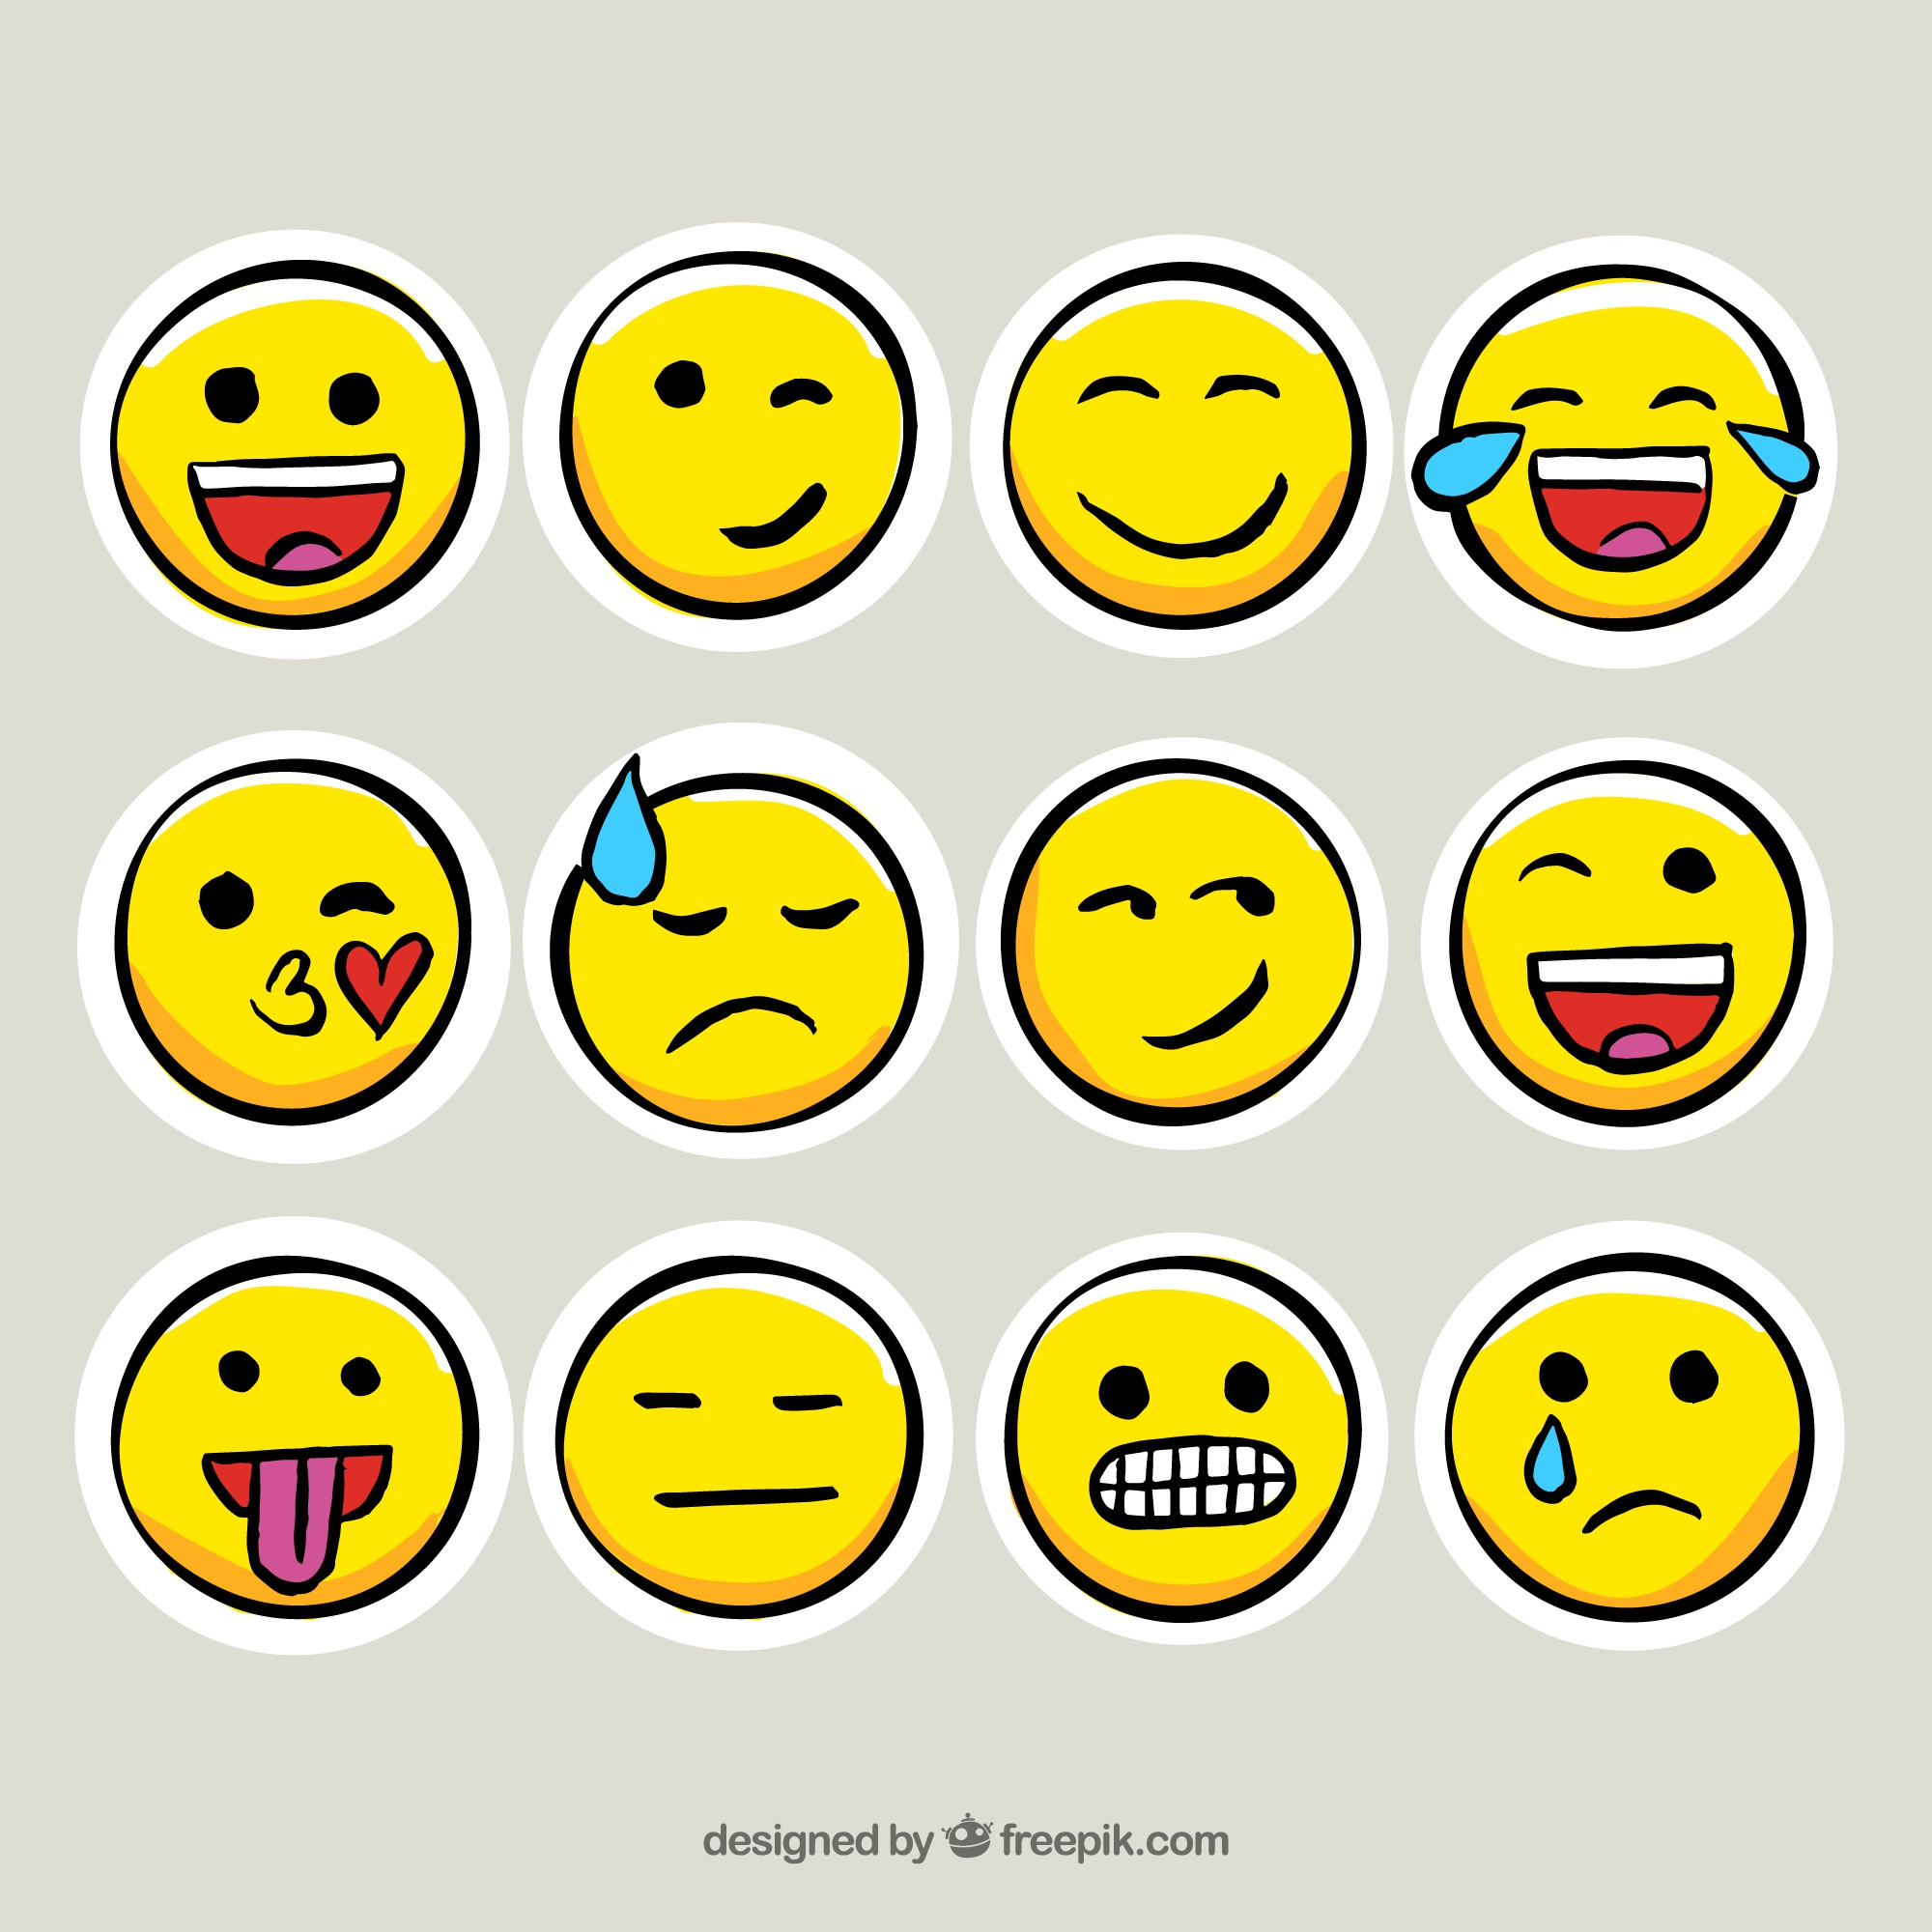 Collection of emoticon stickers in hand-drawn style